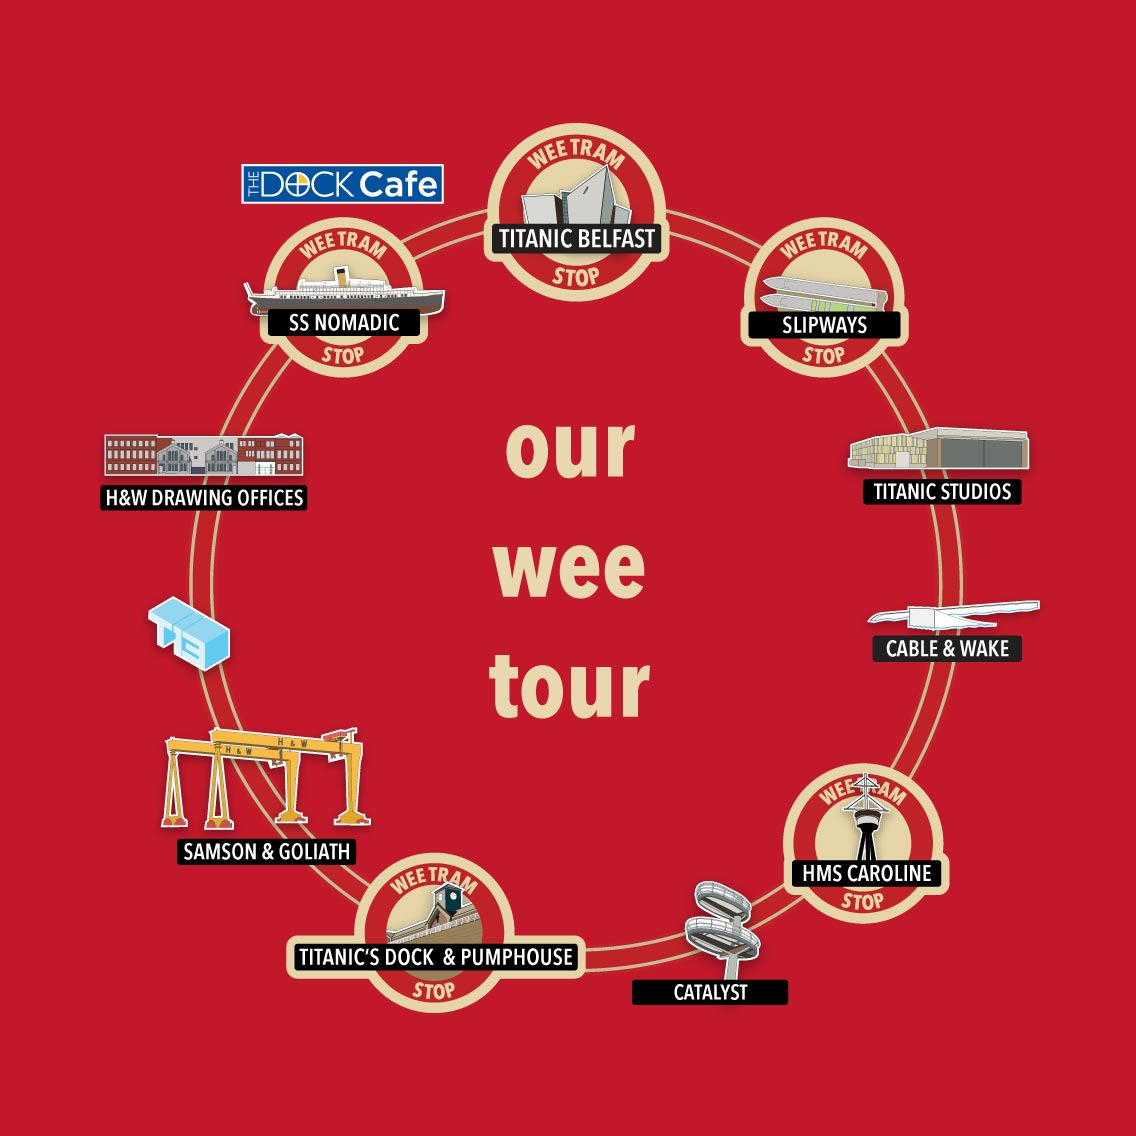 Our Wee Tour